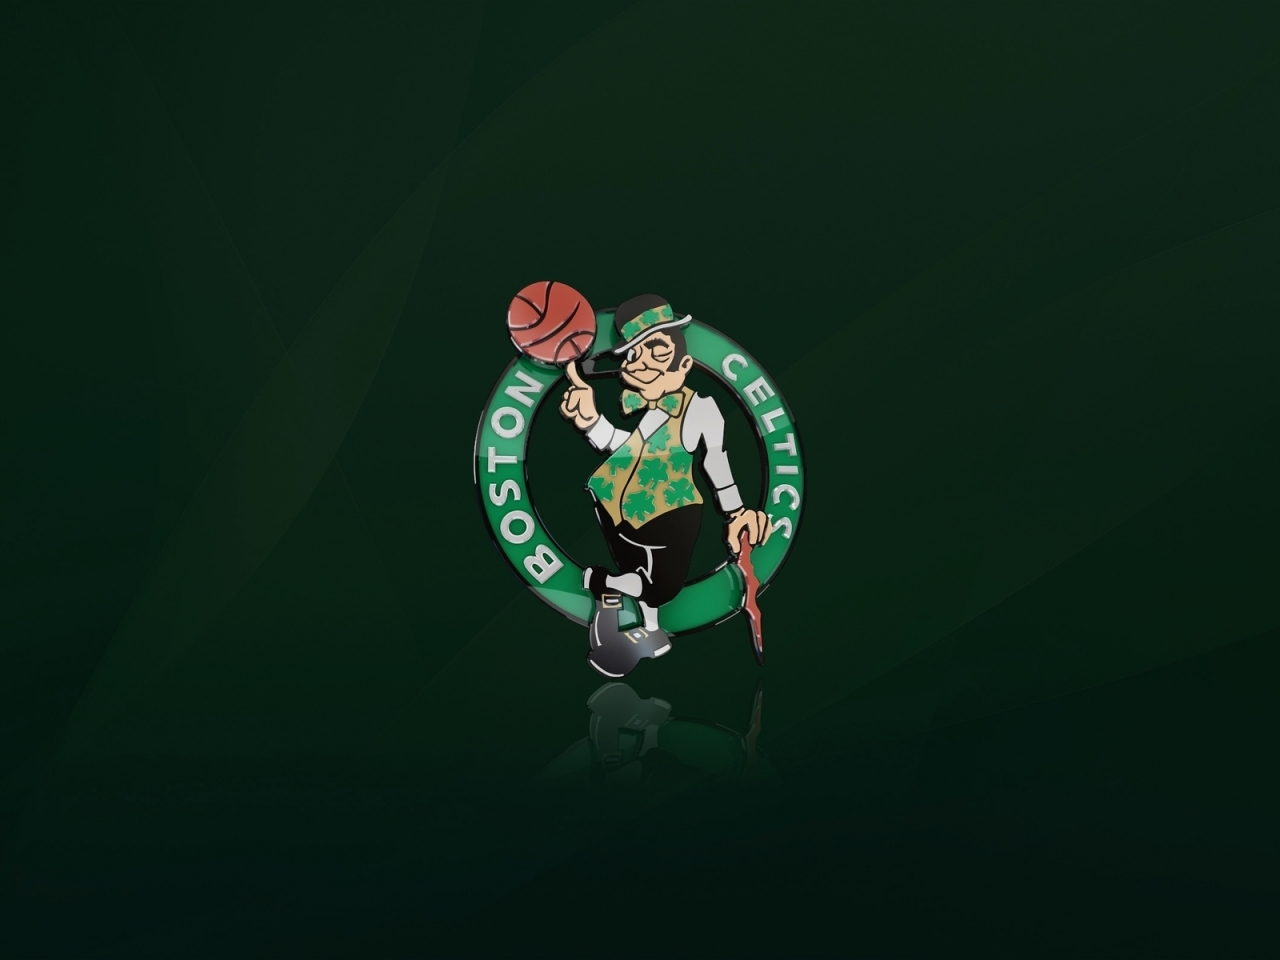 Boston Celtics Logo for 1280 x 960 resolution